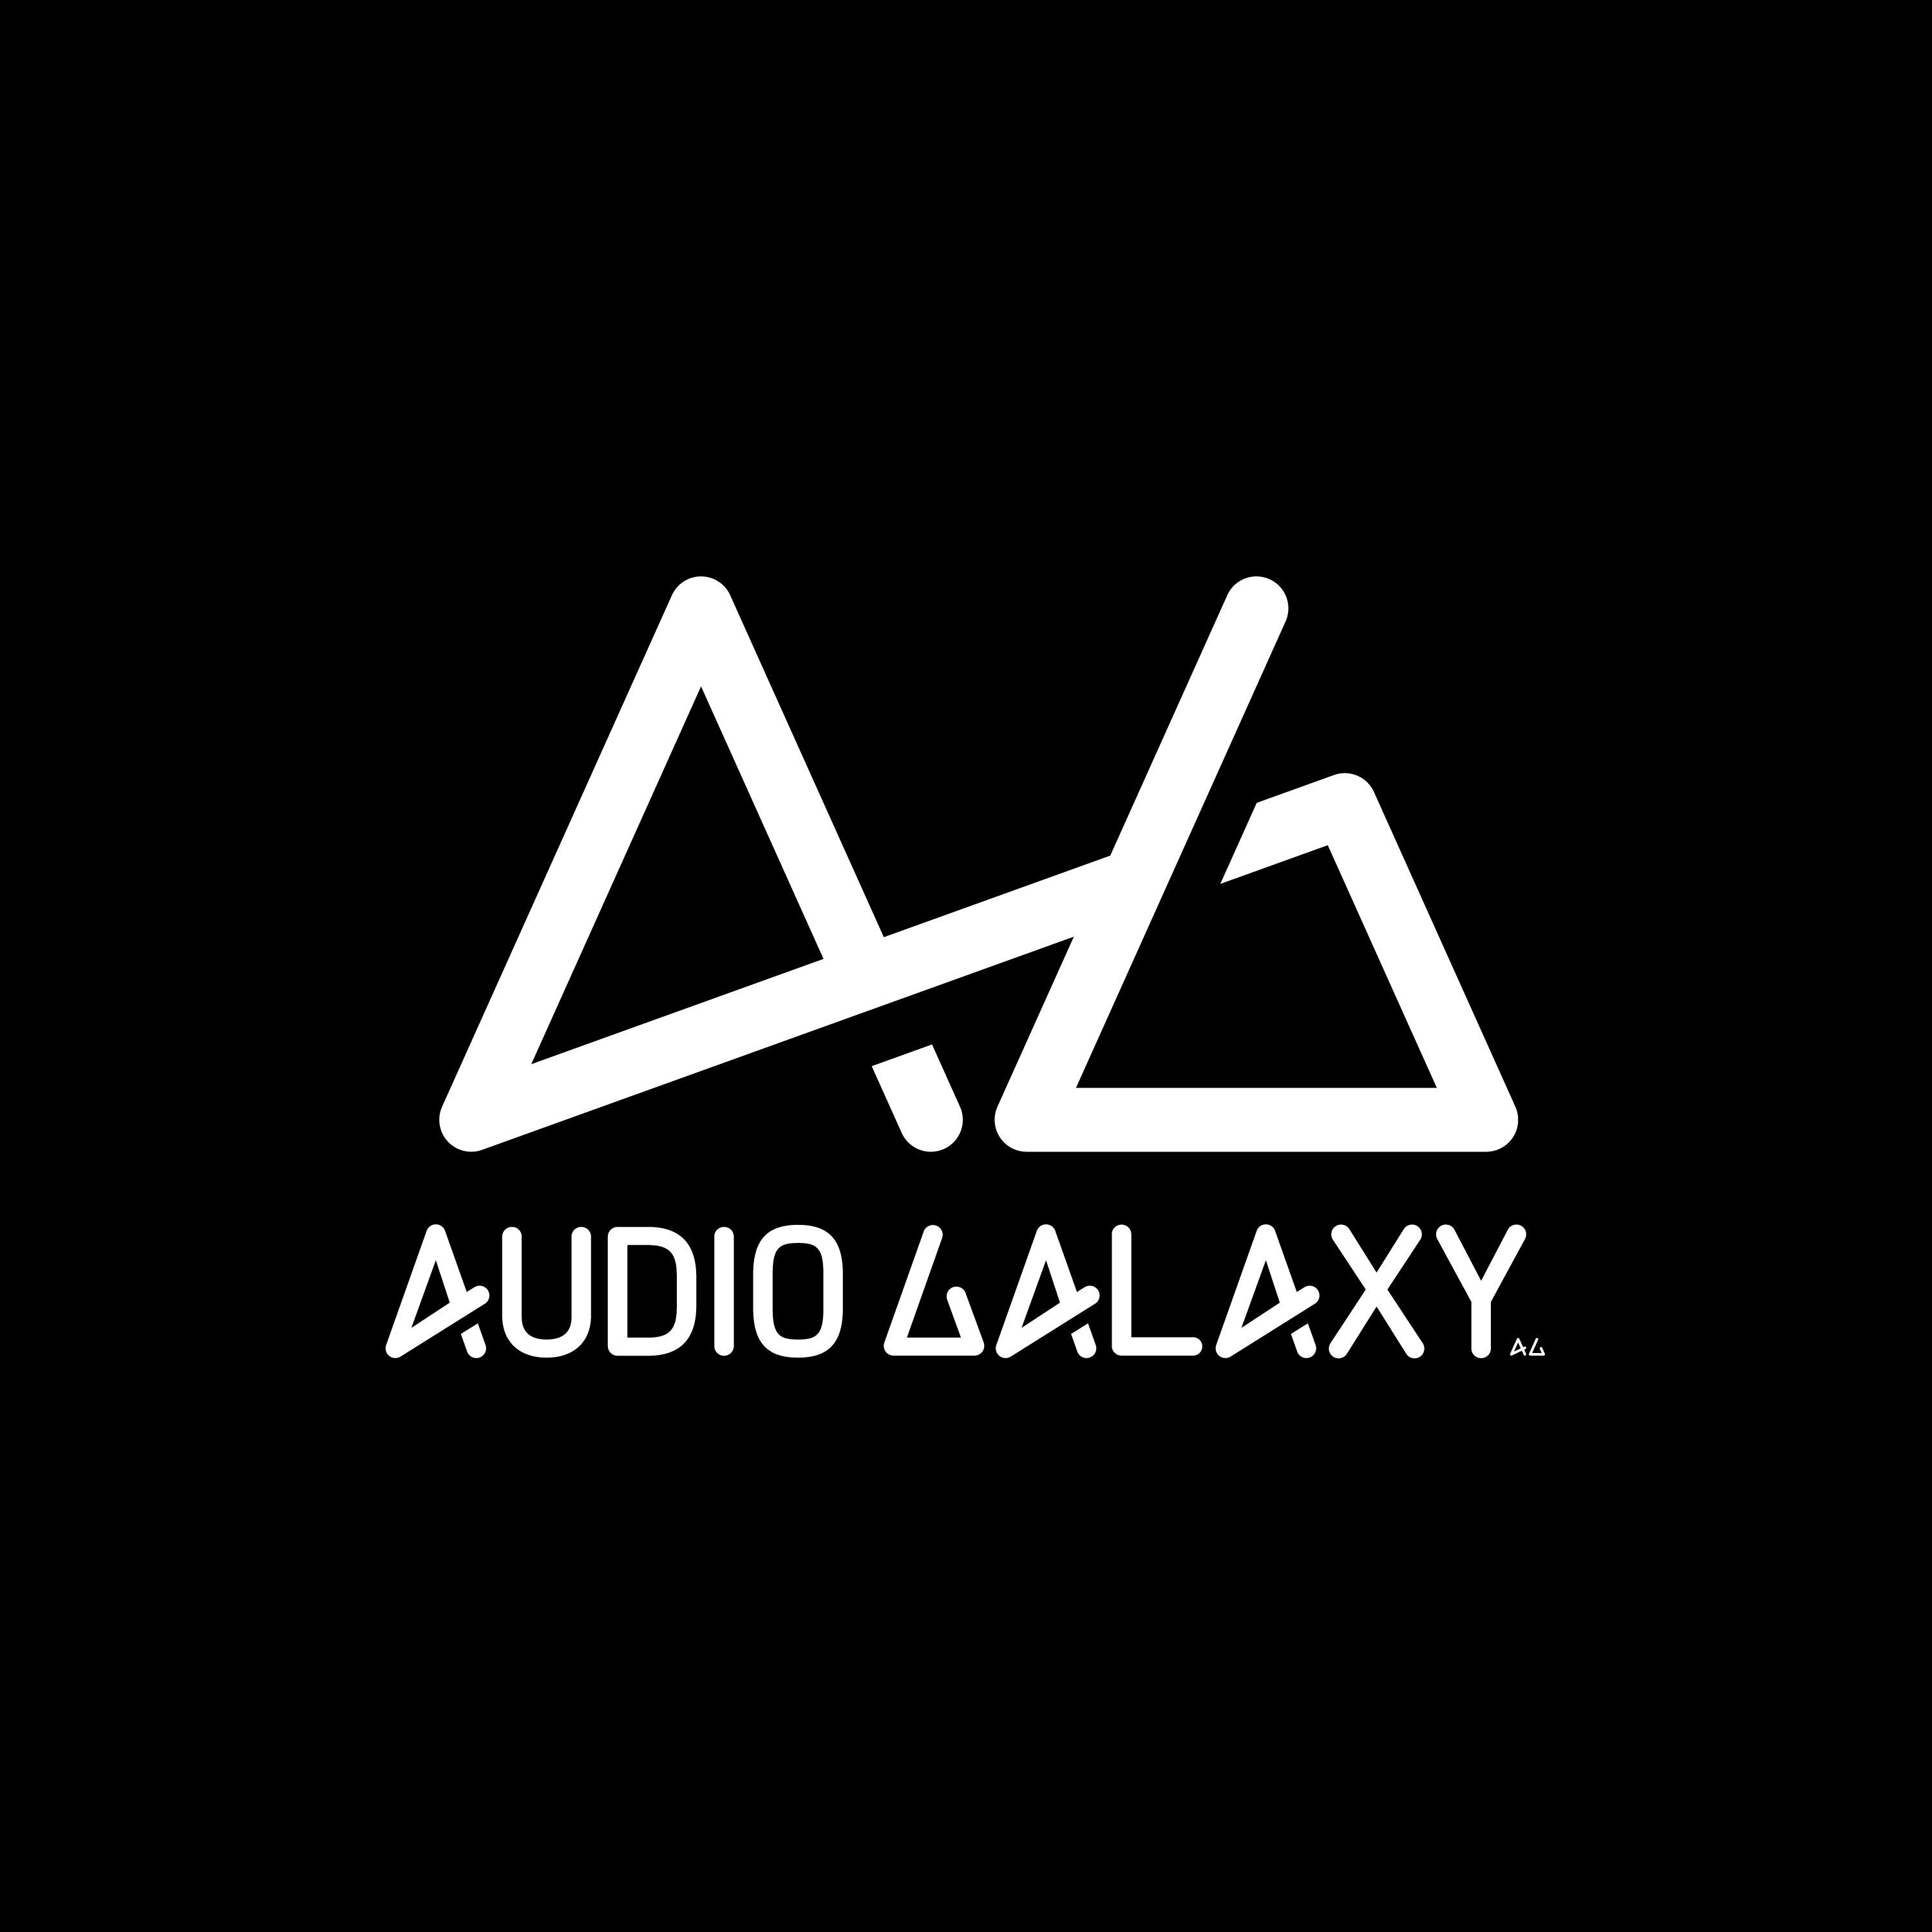 AUDIO GALAXY Archive